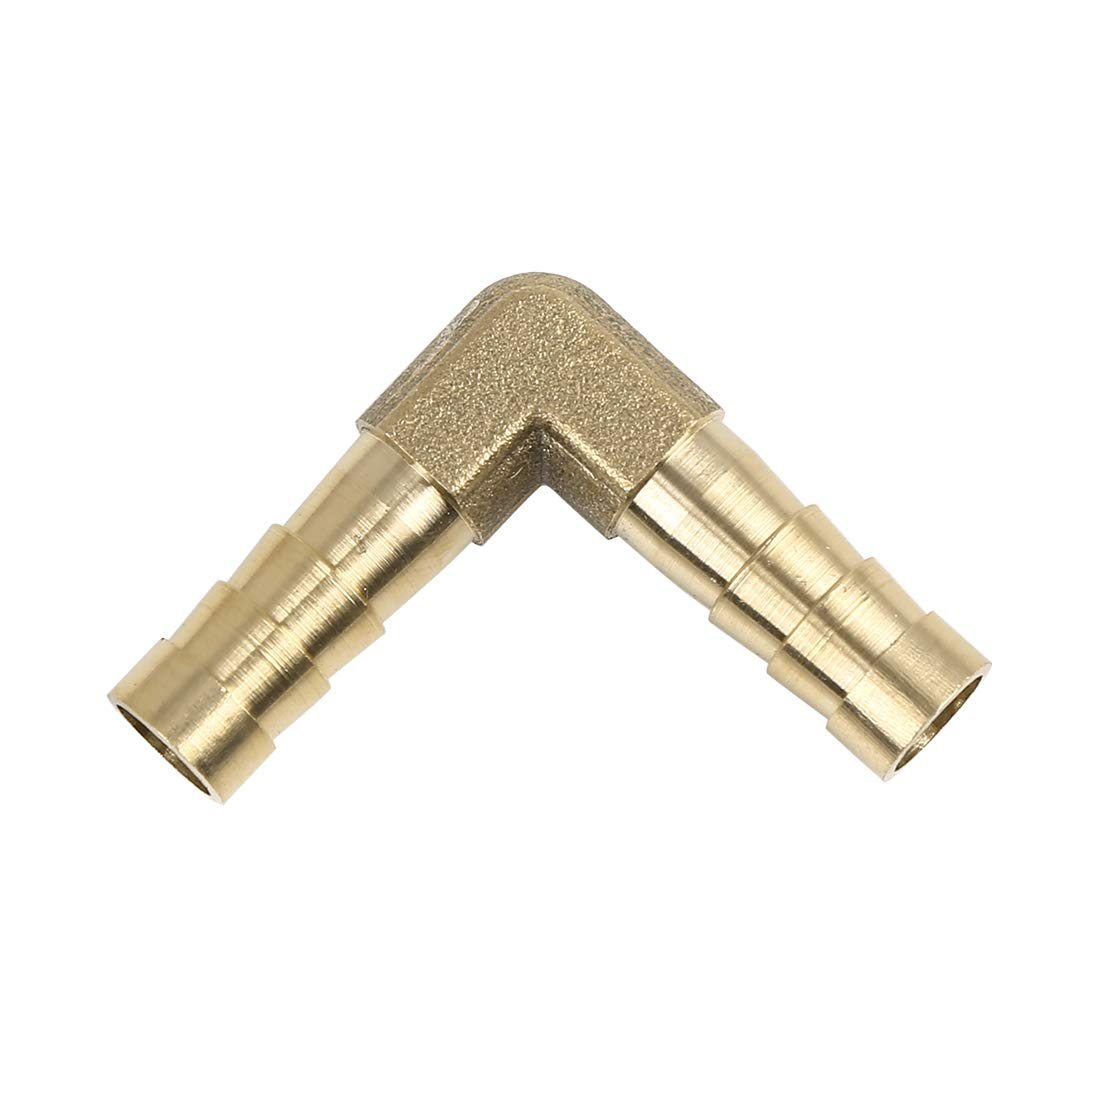 X AUTOHAUX 12mm Brass Barb Elbow 90 Degree Male Thread Connector for Air Water Gas Oil